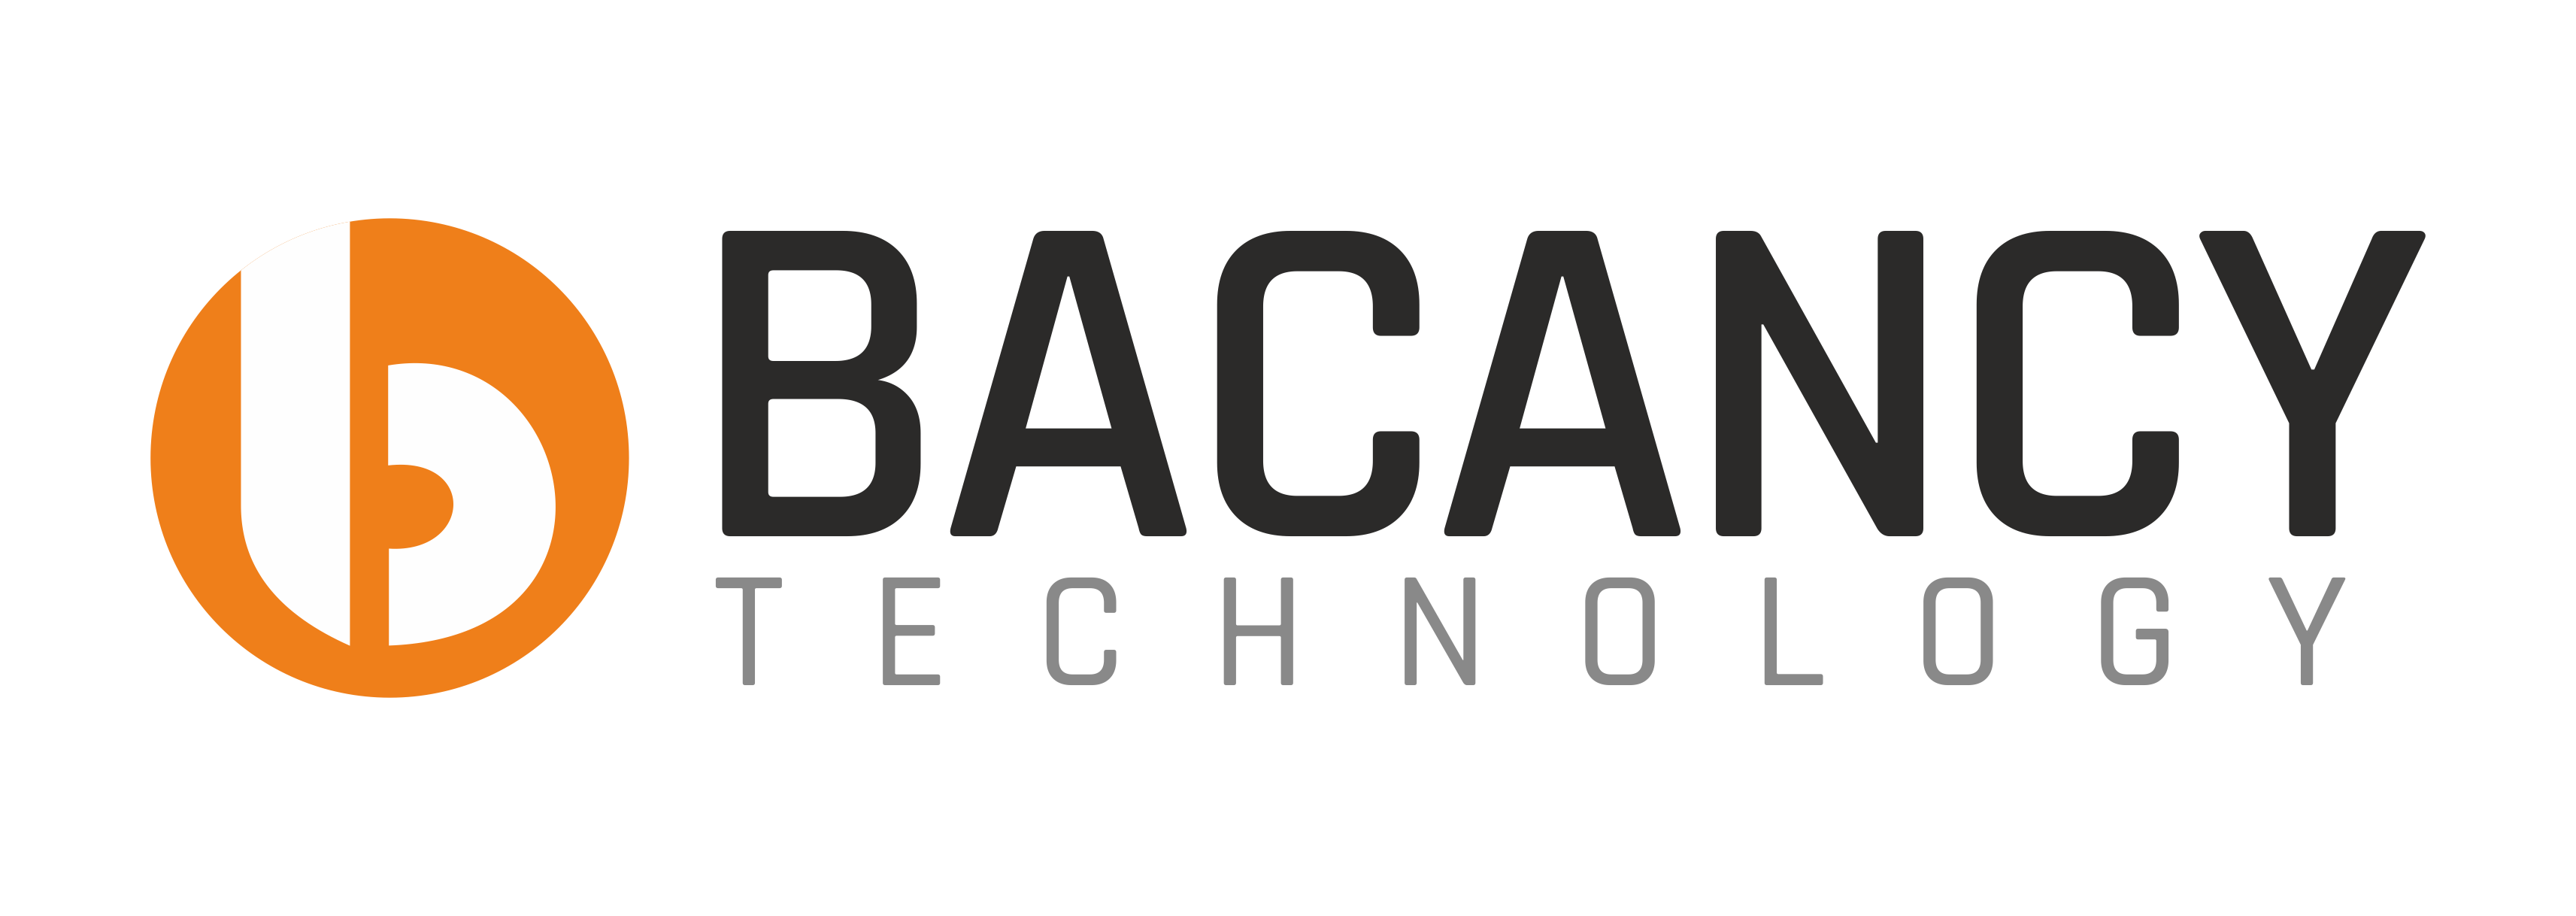 Bacancy Technology